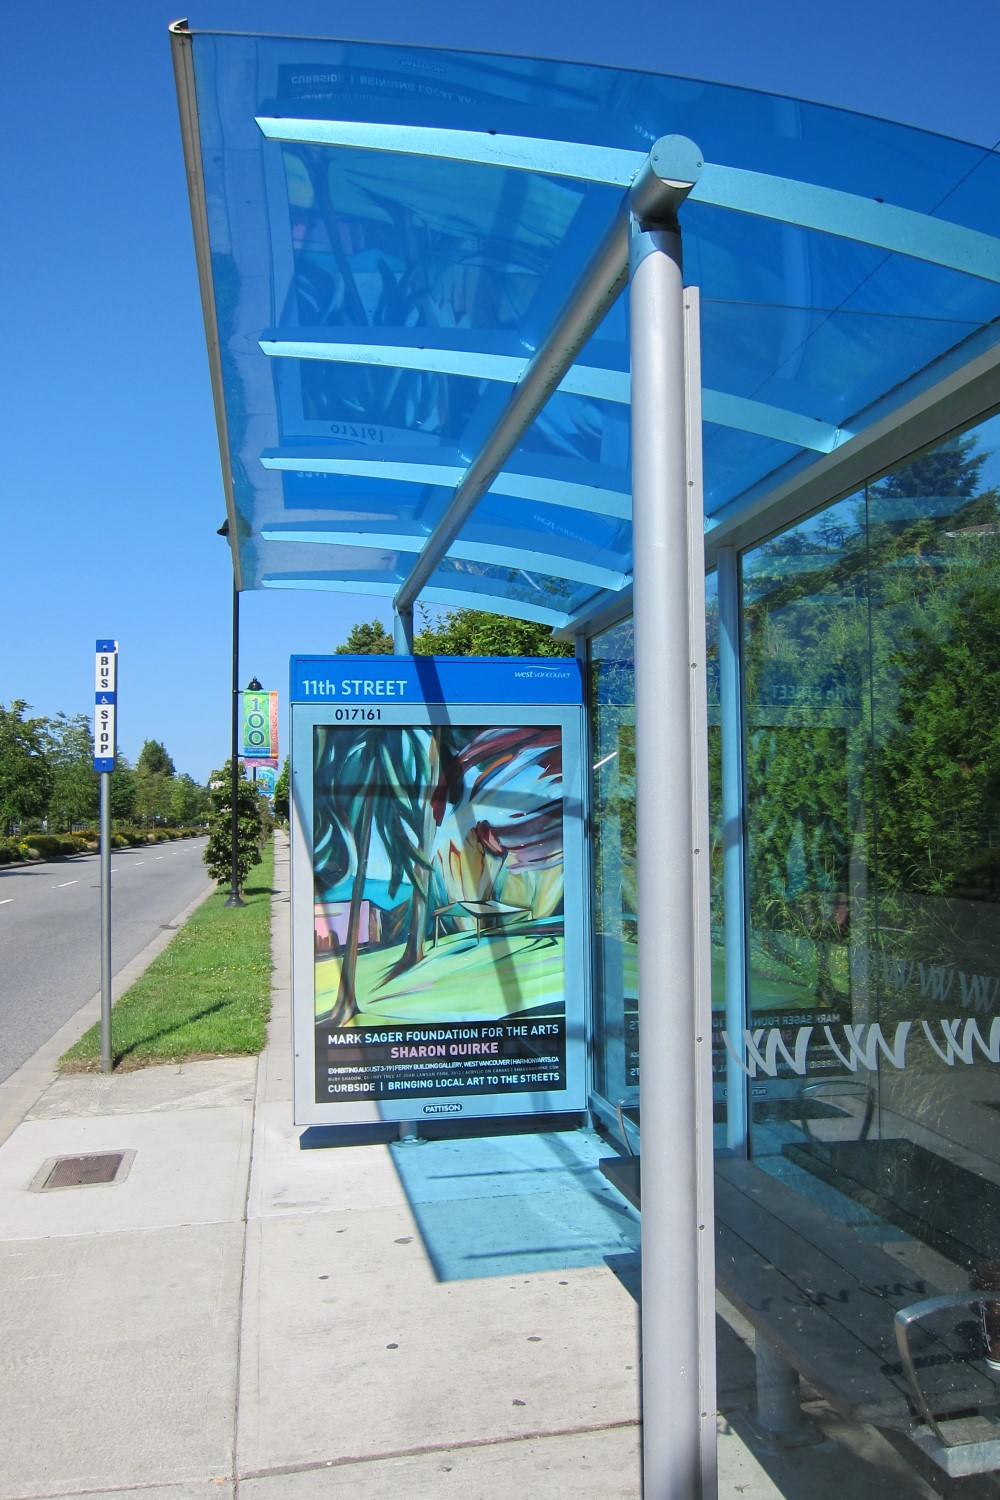 Harmony Arts Bus Shelter Project, West Vancouver, BC